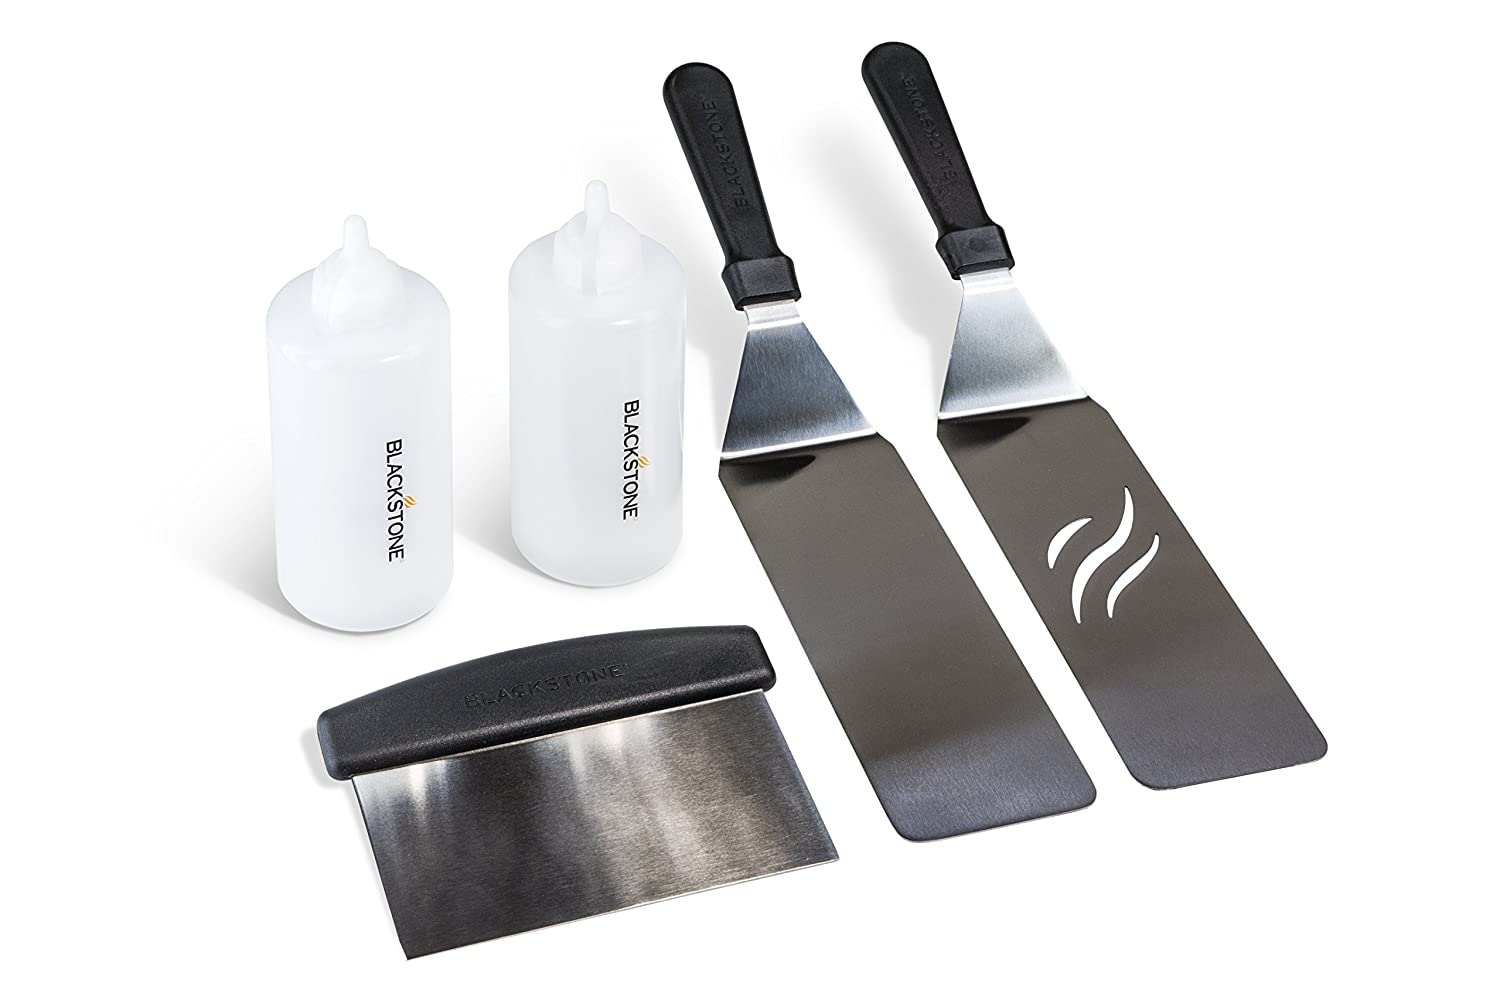 Blackstone Signature Griddle Accessories, Restaurant Grade, 2 Spatulas, 1 Chopper Scraper, 2 Bottles, FREE Recipe Book, 5 Piece Tool Kit for BBQ ...